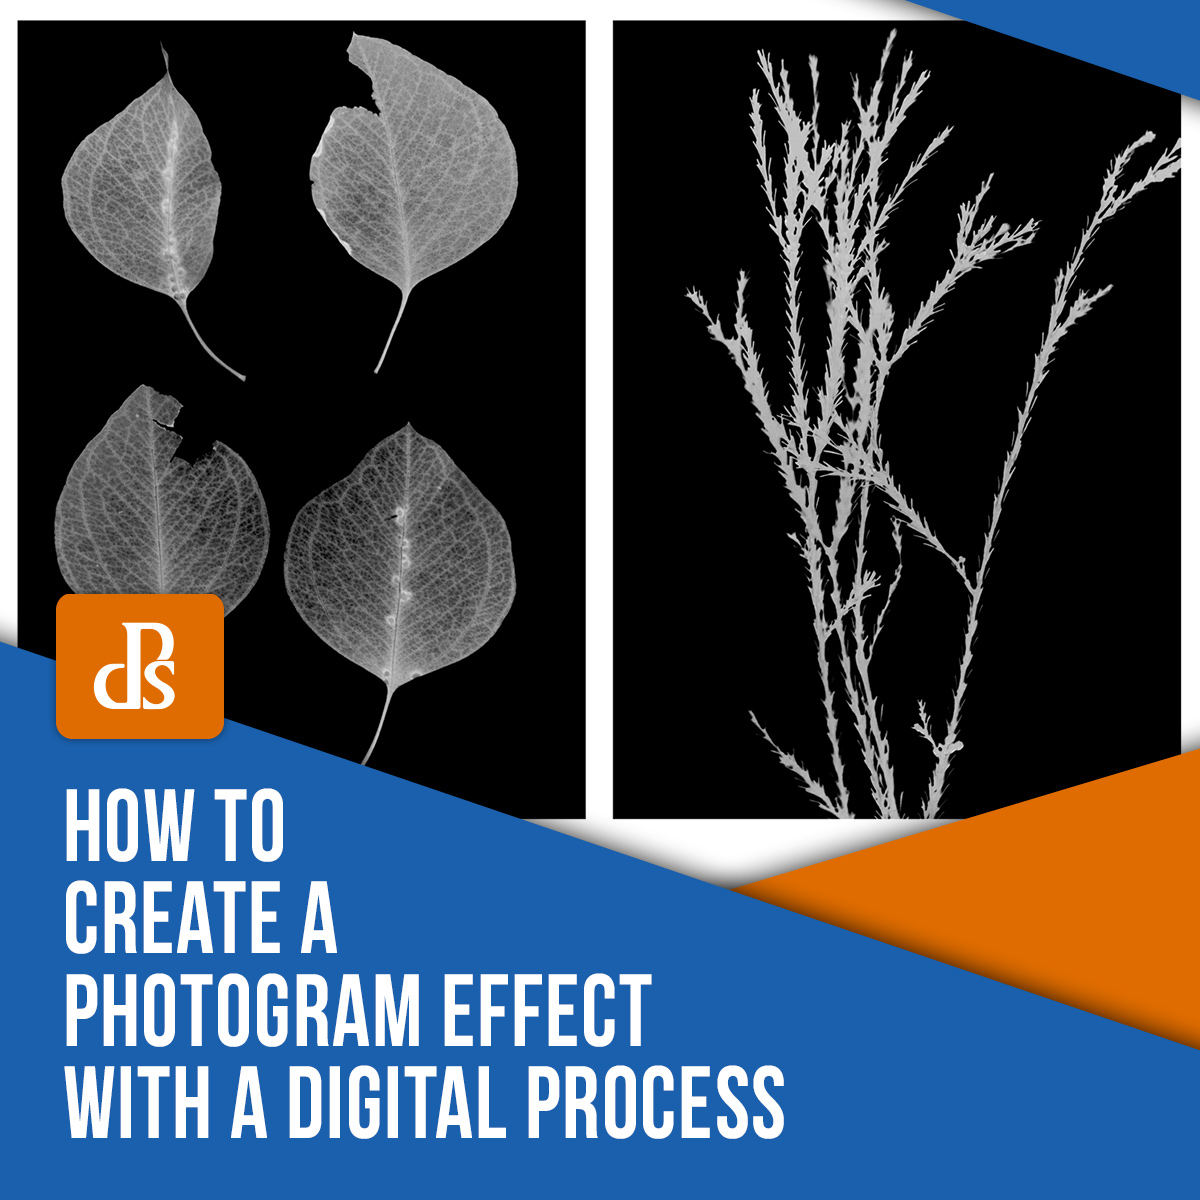 https://i1.wp.com/digital-photography-school.com/wp-content/uploads/2020/06/dps-how-to-photogram-effect.jpg?ssl=1